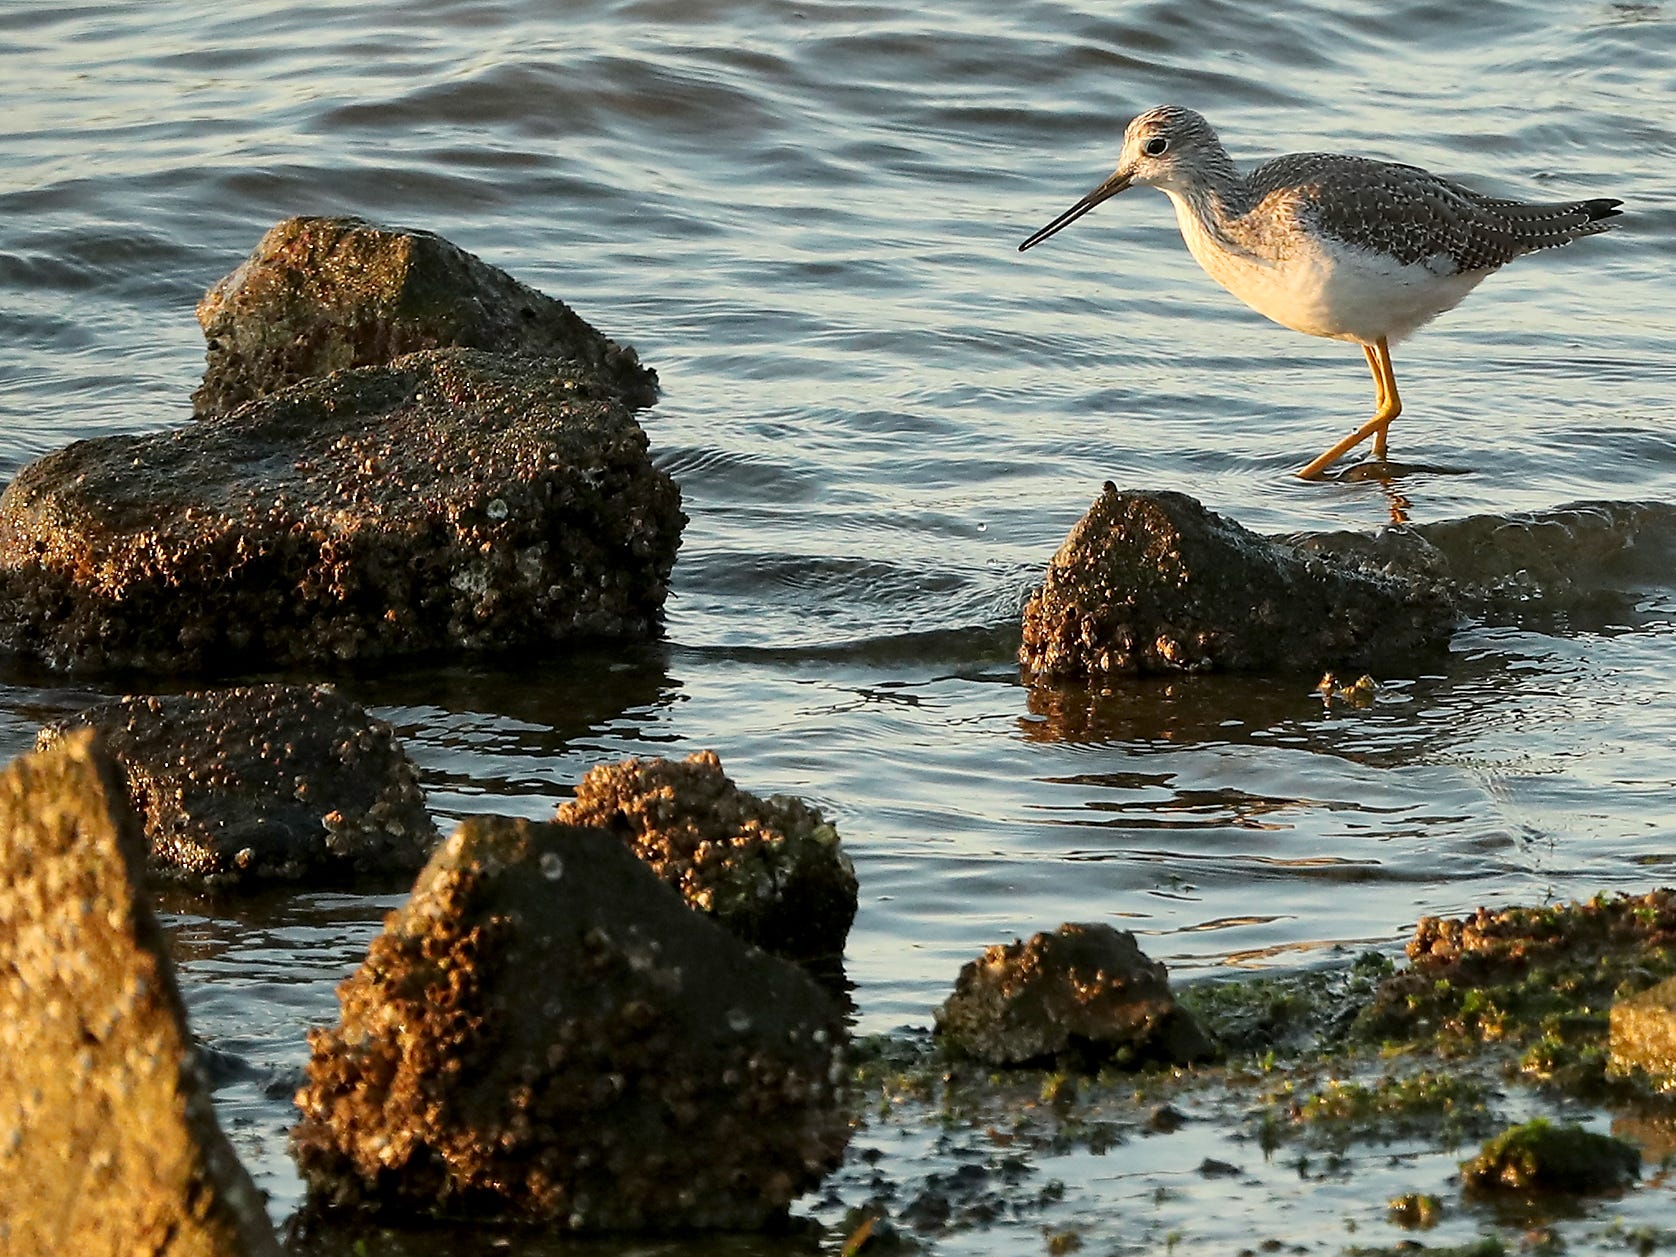 A greater yellowlegs picks its way along the rocky shore at the Tracyton Boat Launch on November 16, 2018.